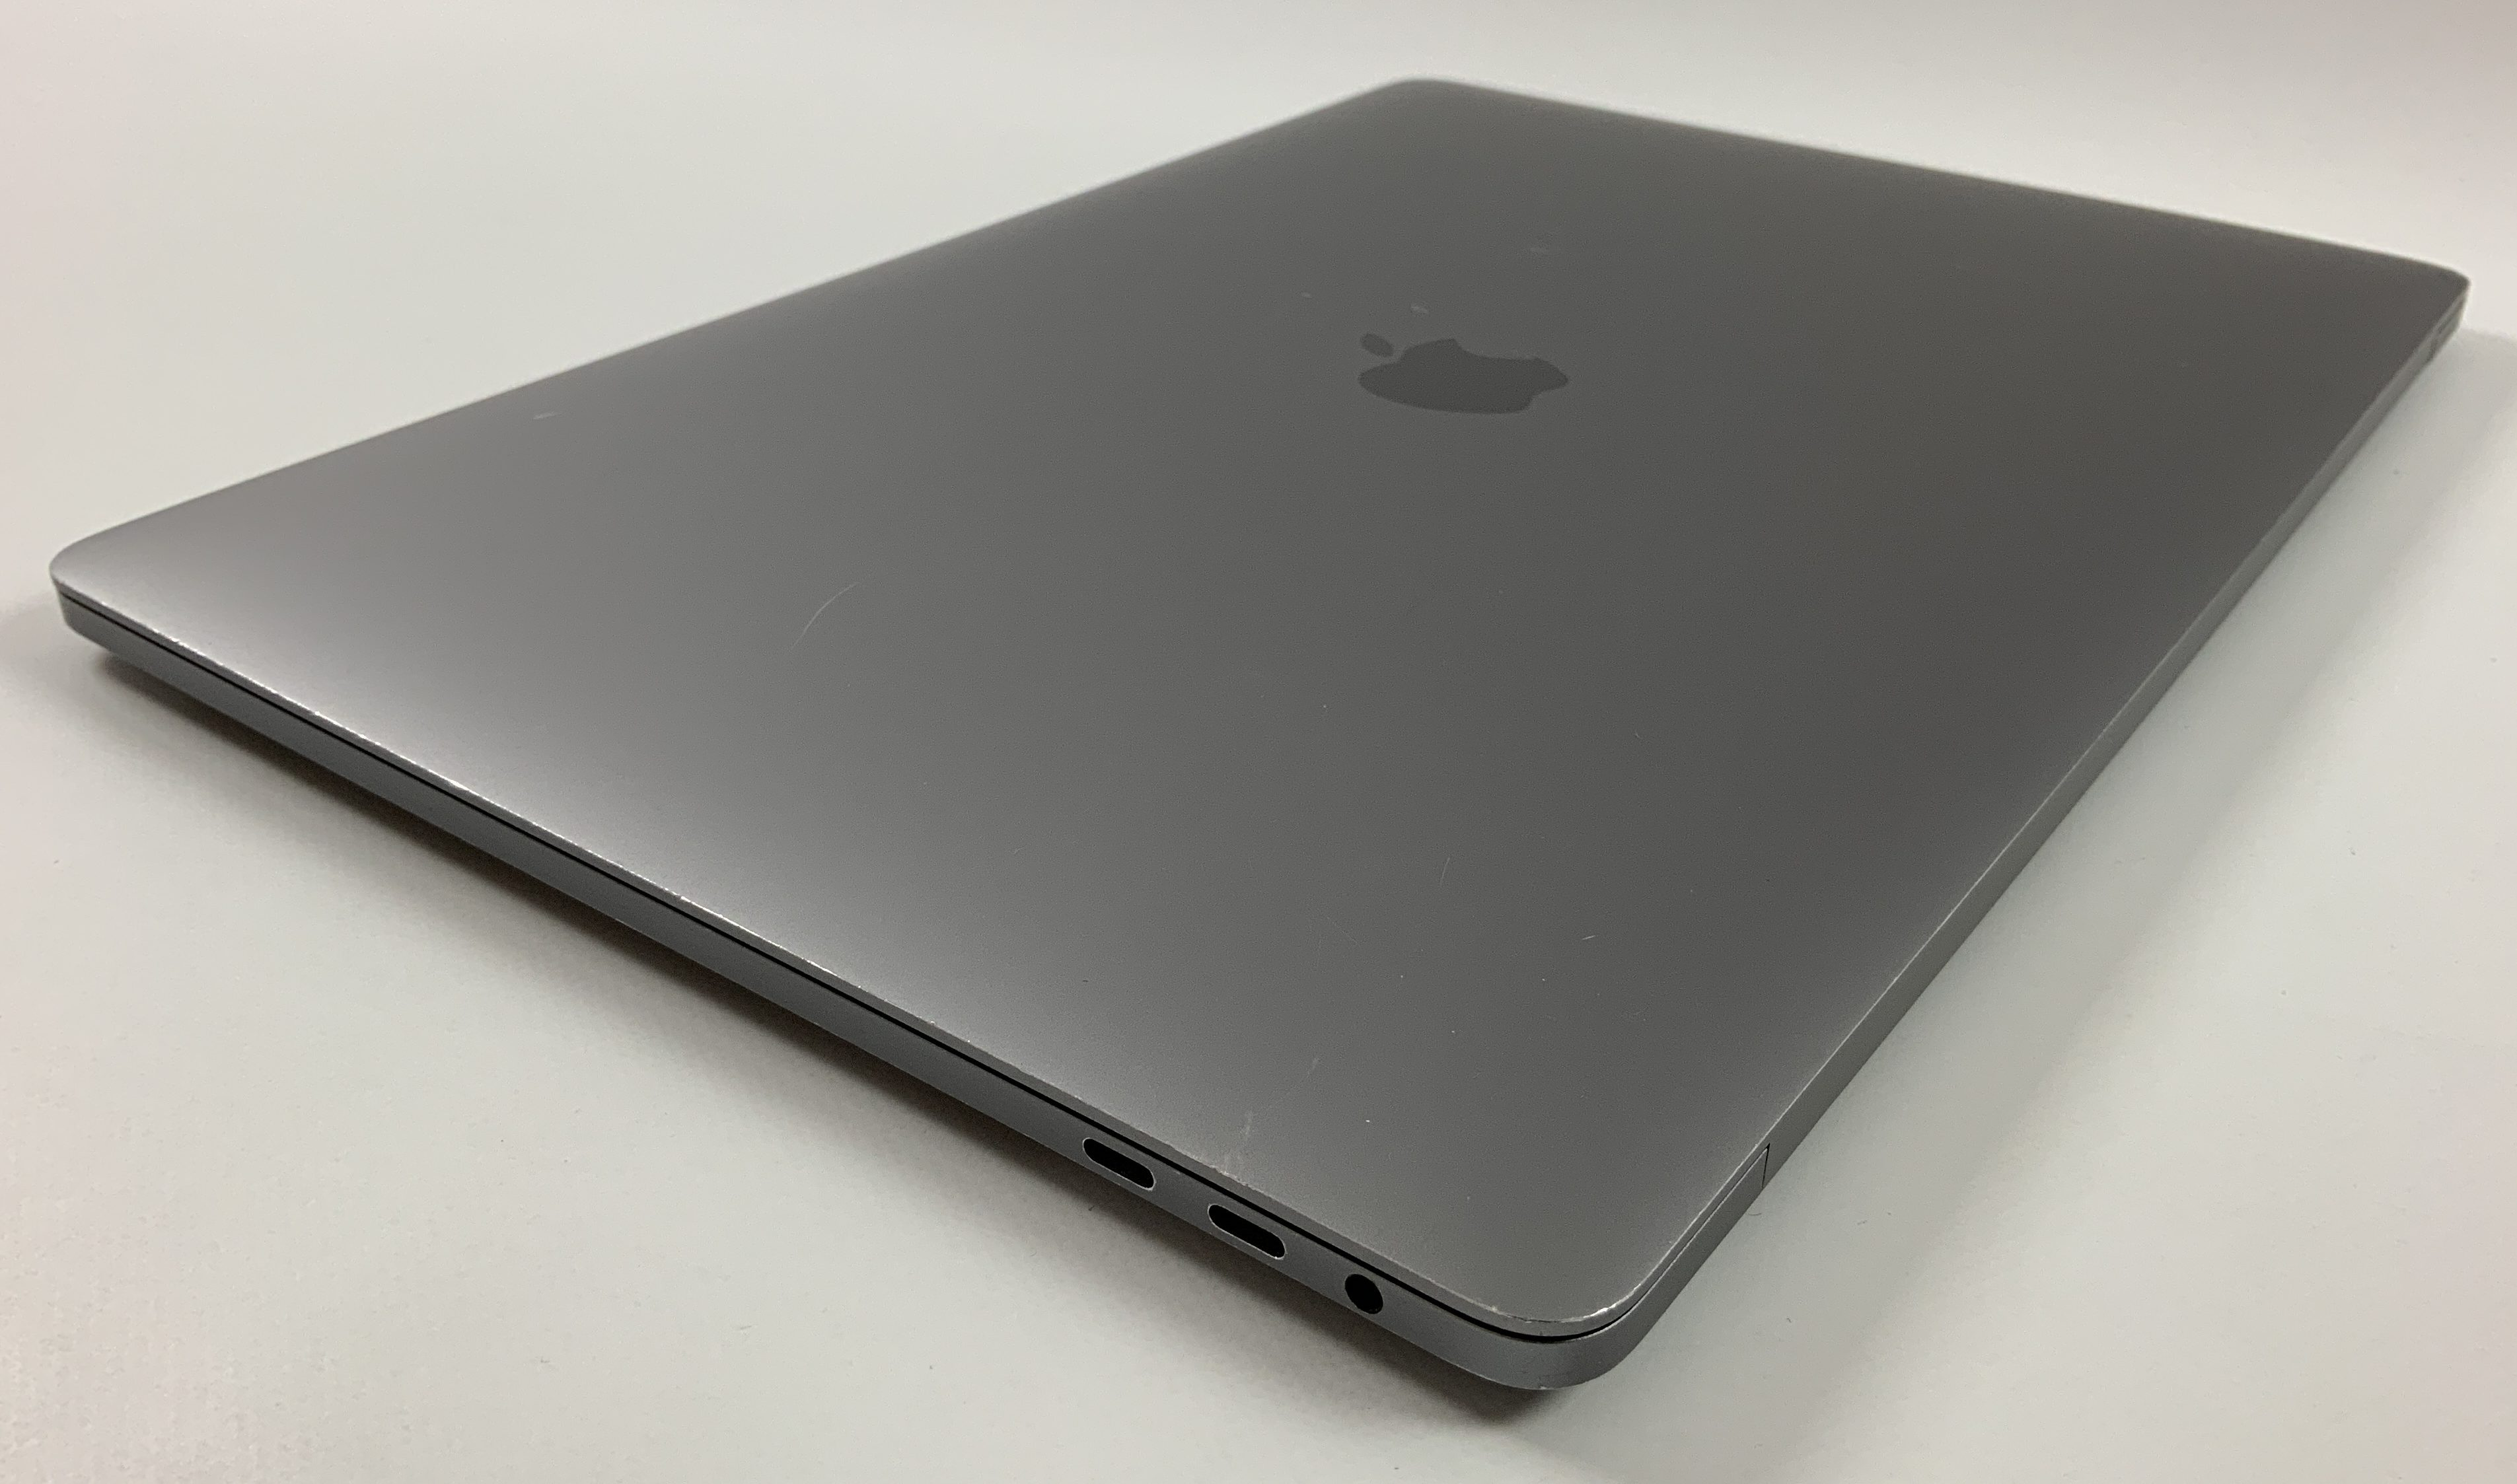 "MacBook Pro 15"" Touch Bar Mid 2018 (Intel 6-Core i7 2.6 GHz 16 GB RAM 512 GB SSD), Space Gray, Intel 6-Core i7 2.6 GHz, 16 GB RAM, 512 GB SSD, image 3"